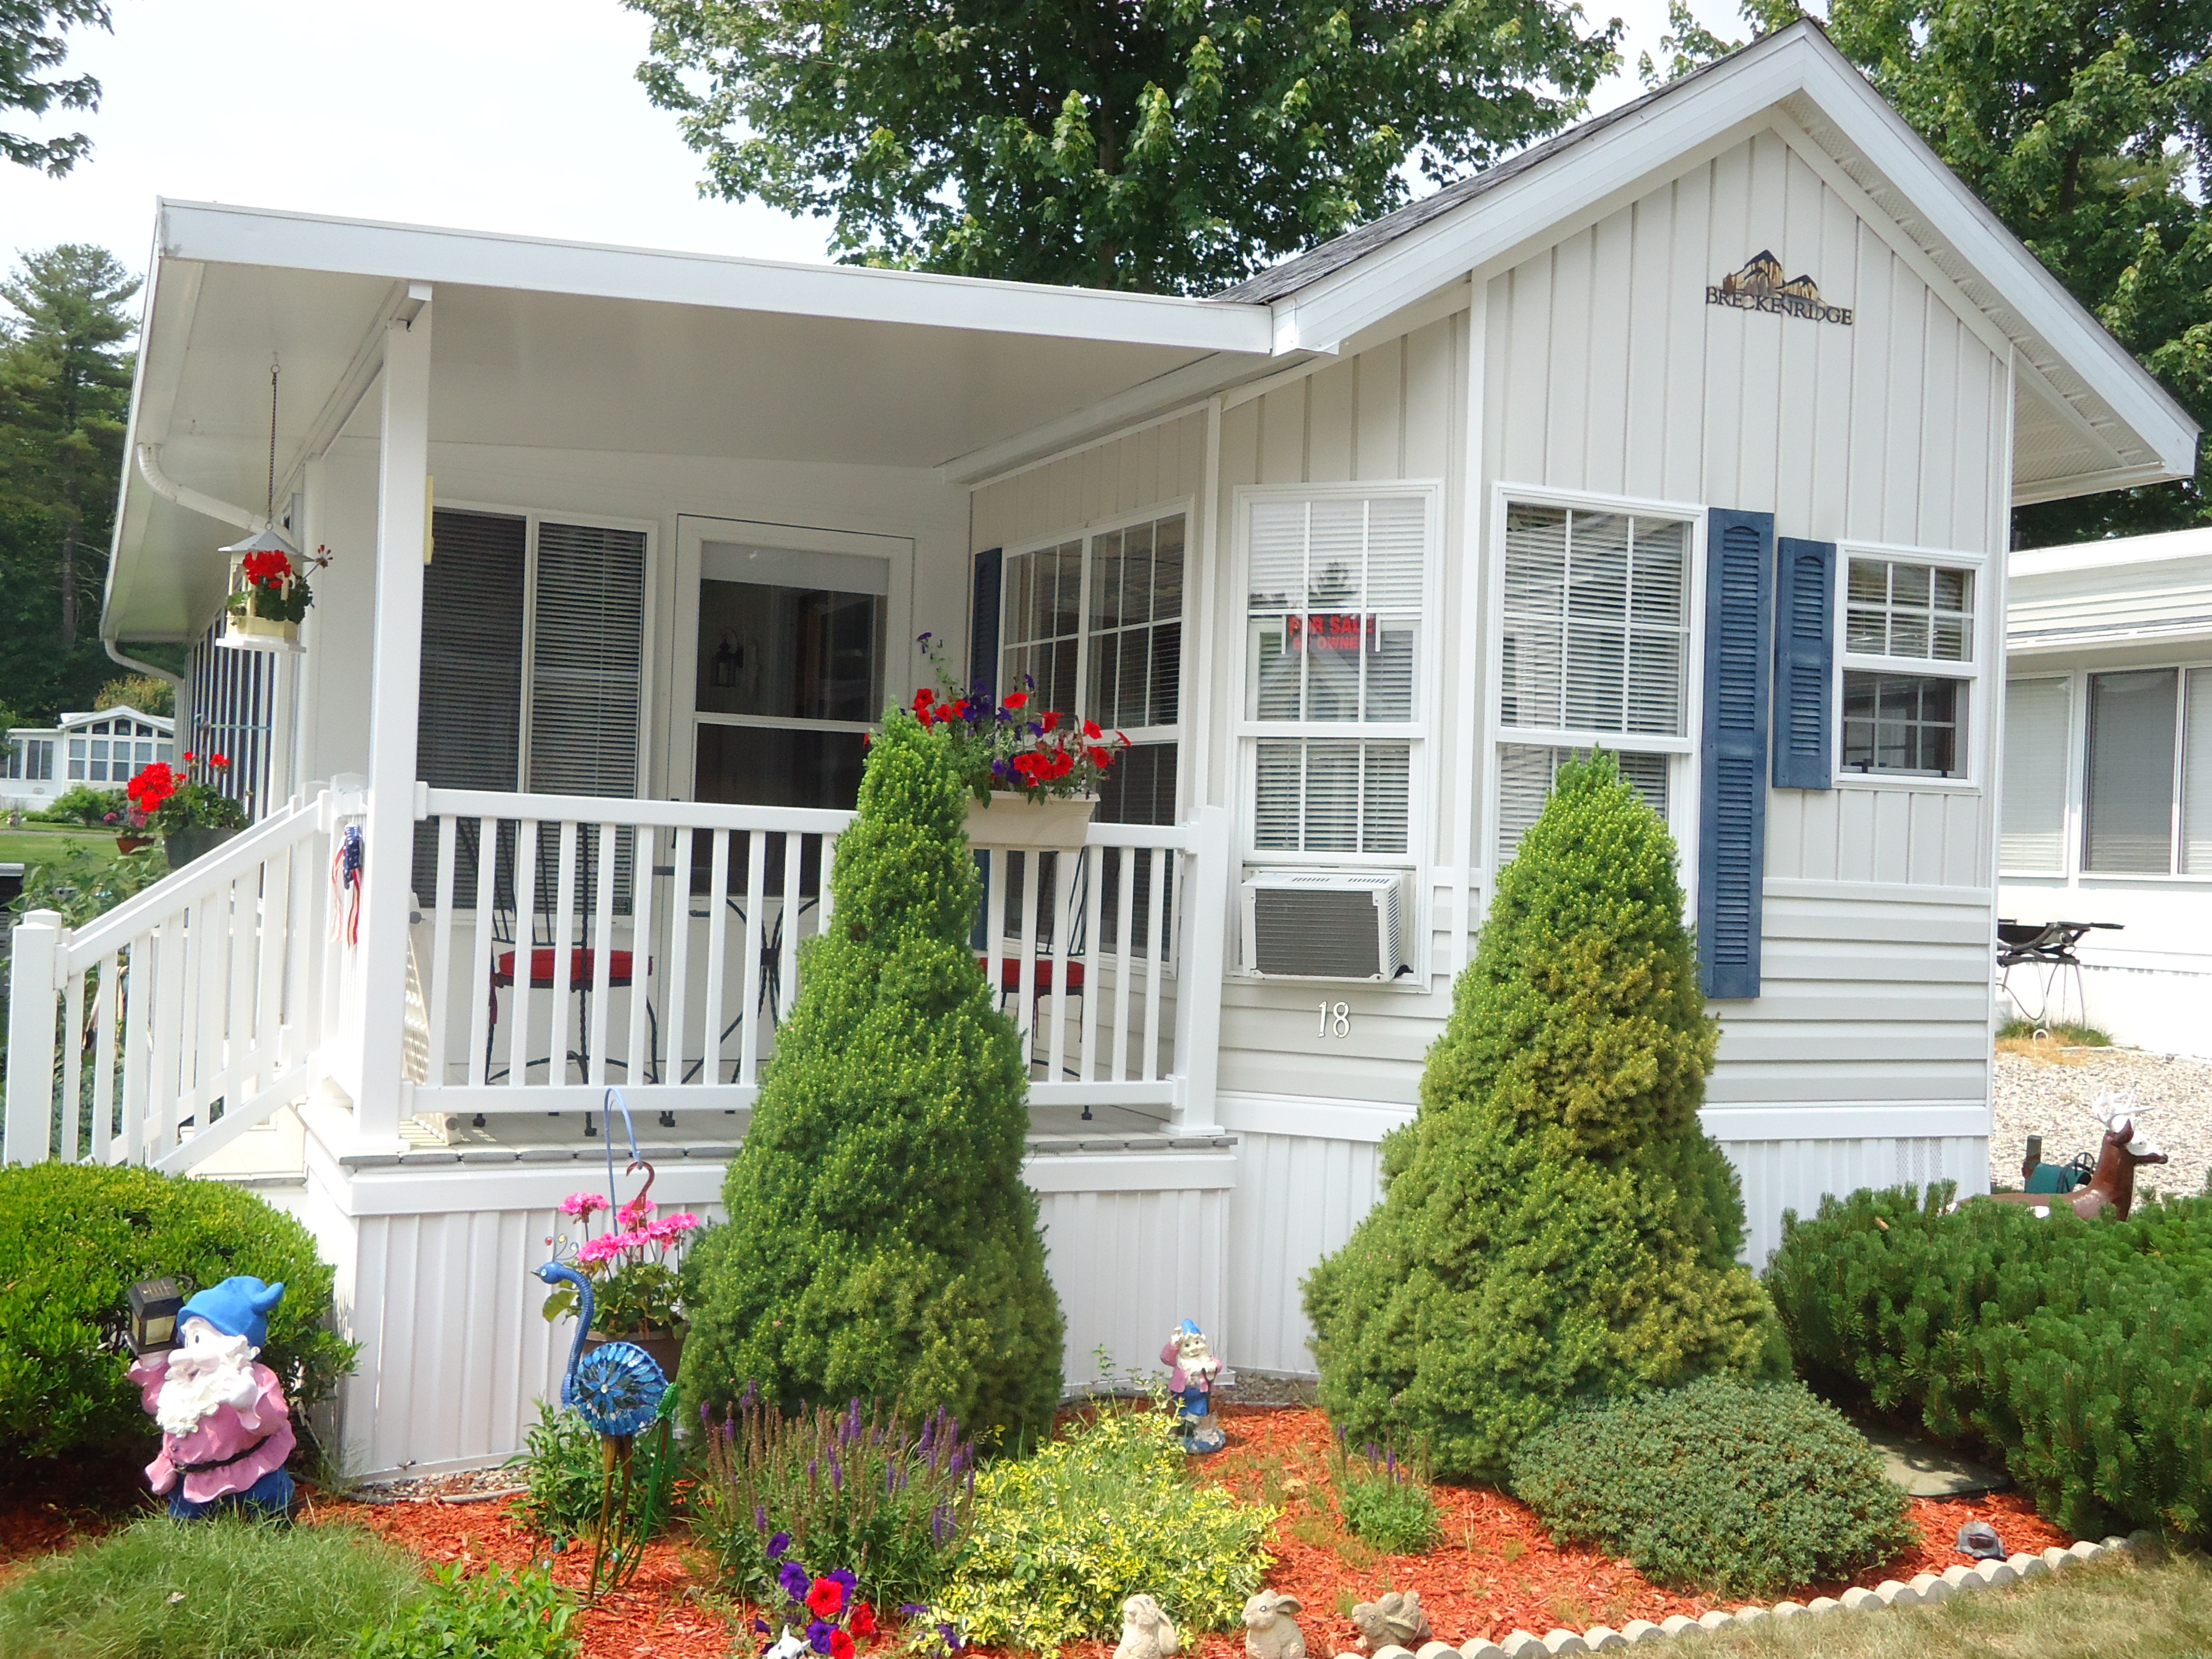 54 ByPass Road #18, Wells, Maine 04090